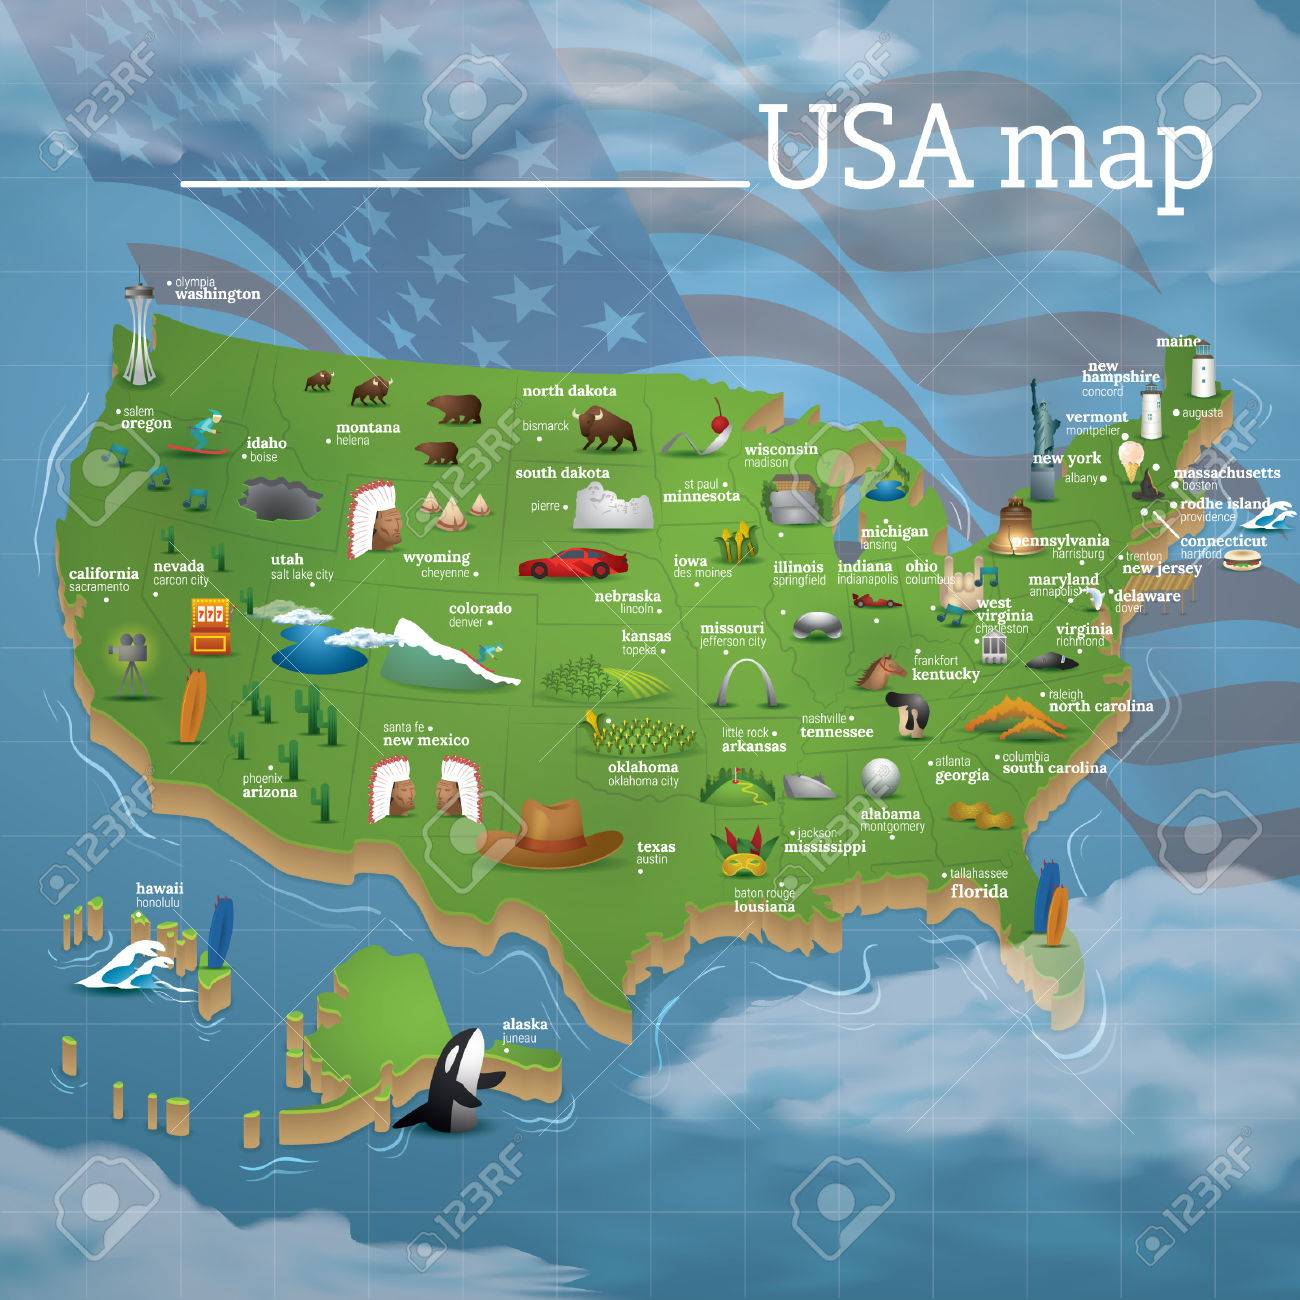 USA Map Famous Symbols Royalty Free Cliparts Vectors And Stock - Little rock usa map